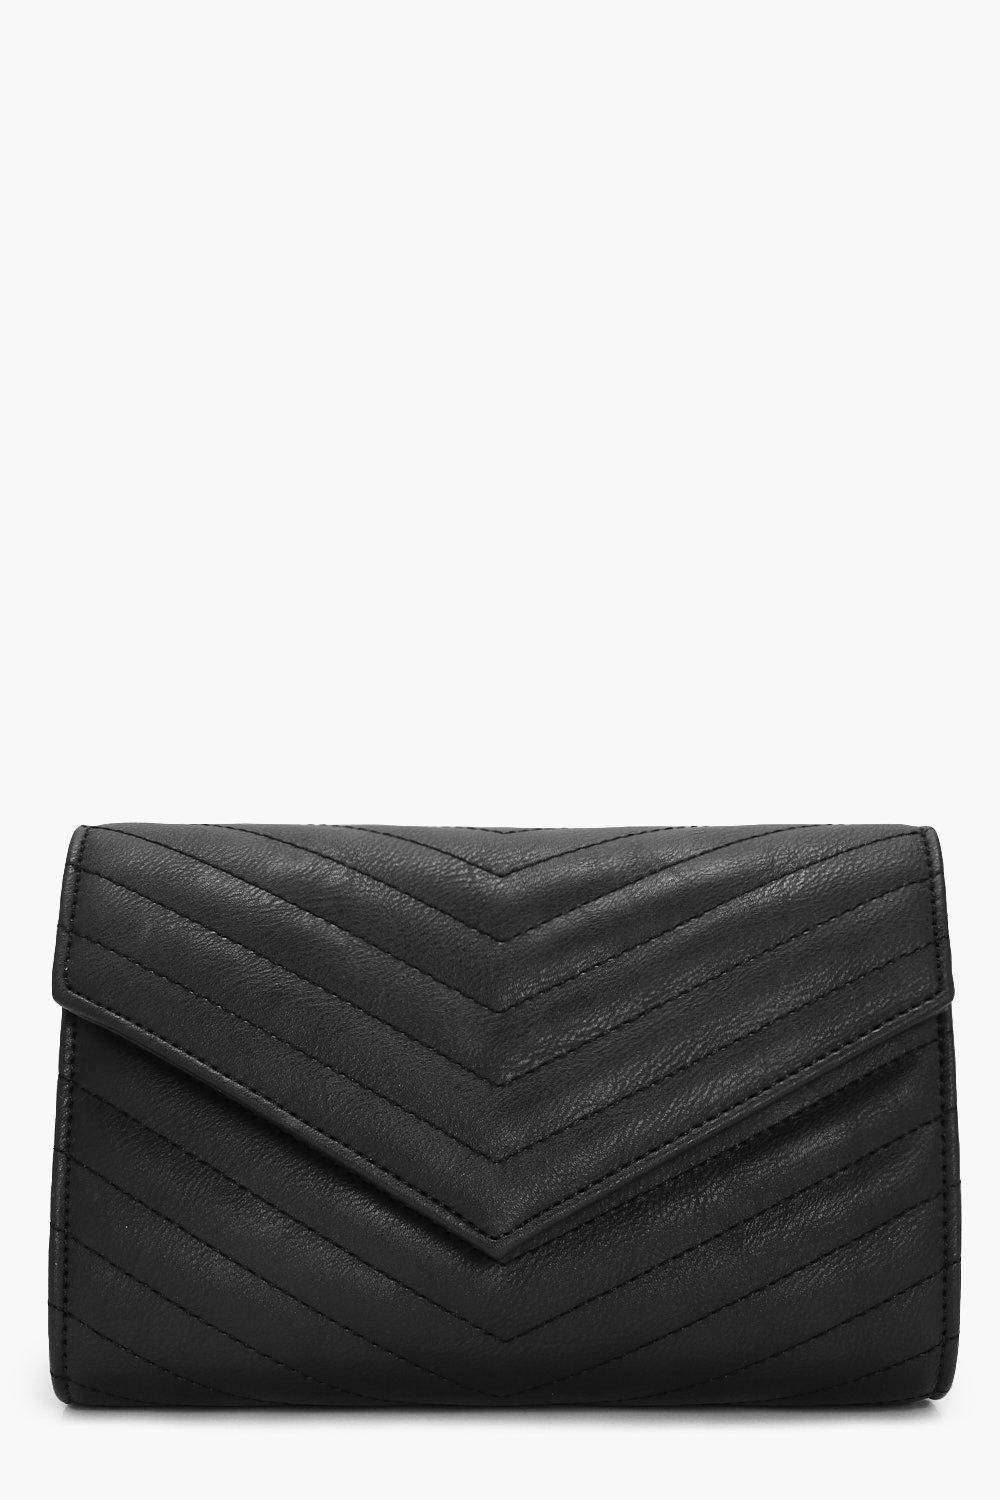 Quilted Envelope Clutch - black - Zoe Quilted Enve